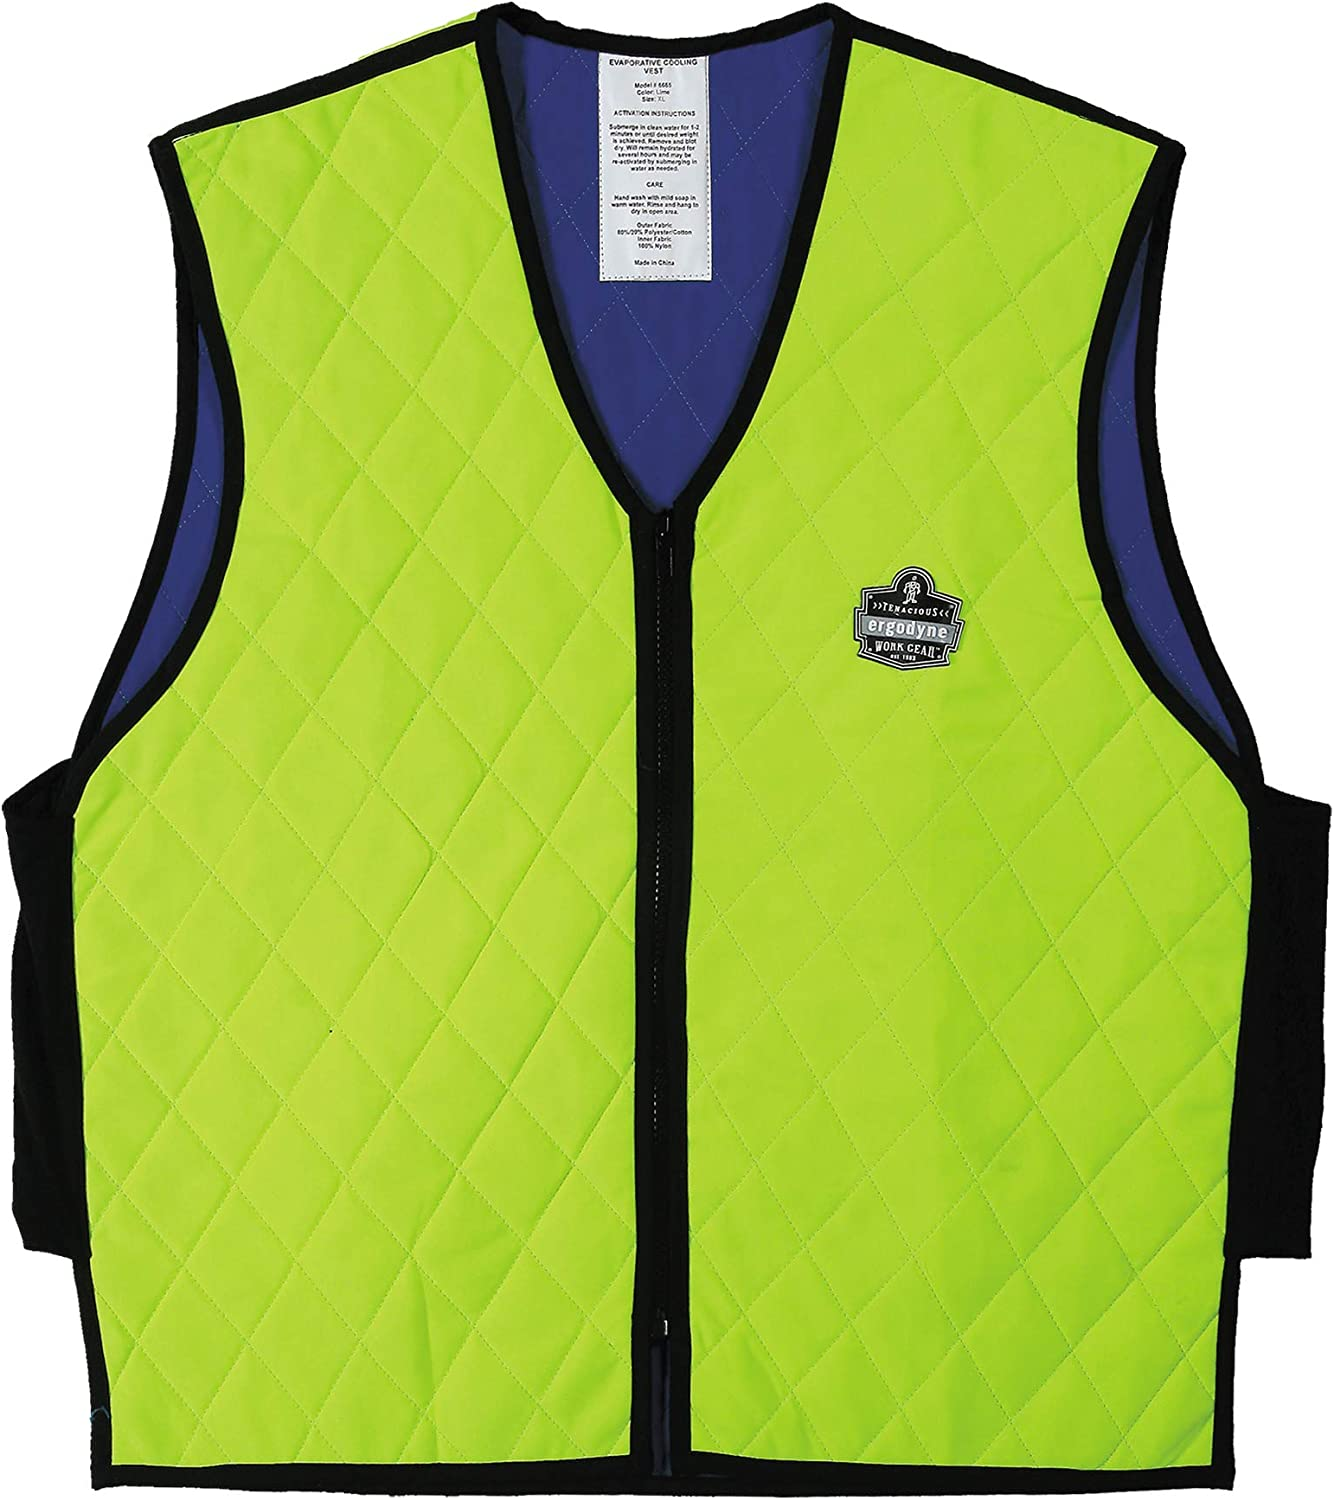 Ergodyne Chill-Its 6665 Evaporative Cooling Vest - Lime, Medium